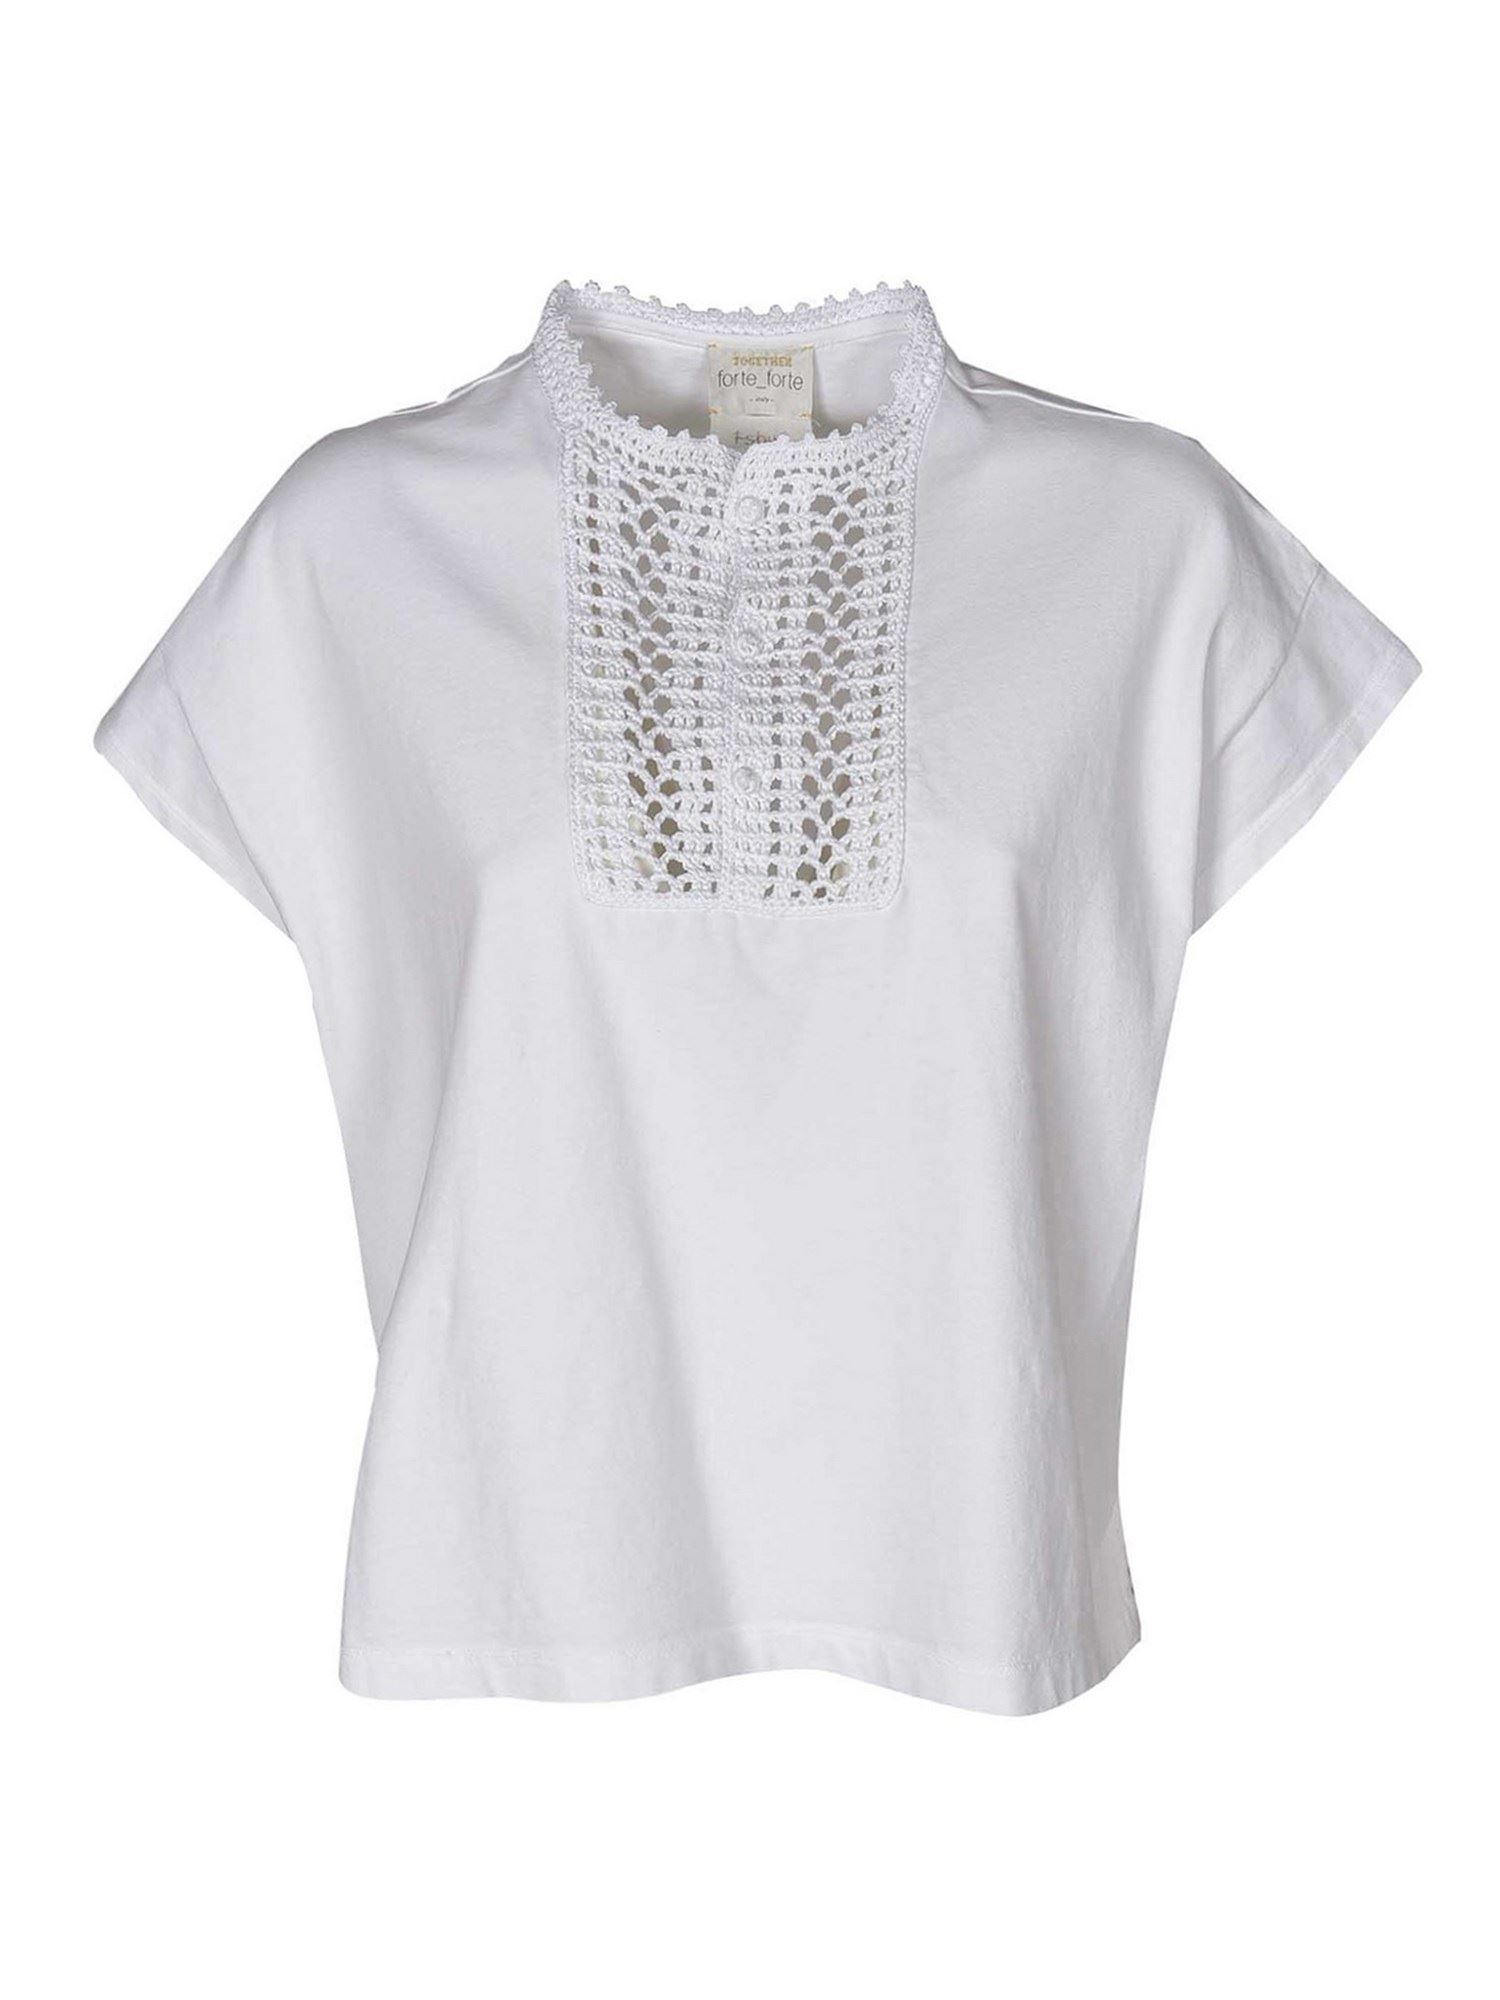 Forte Forte JERSEY TOP IN WHITE